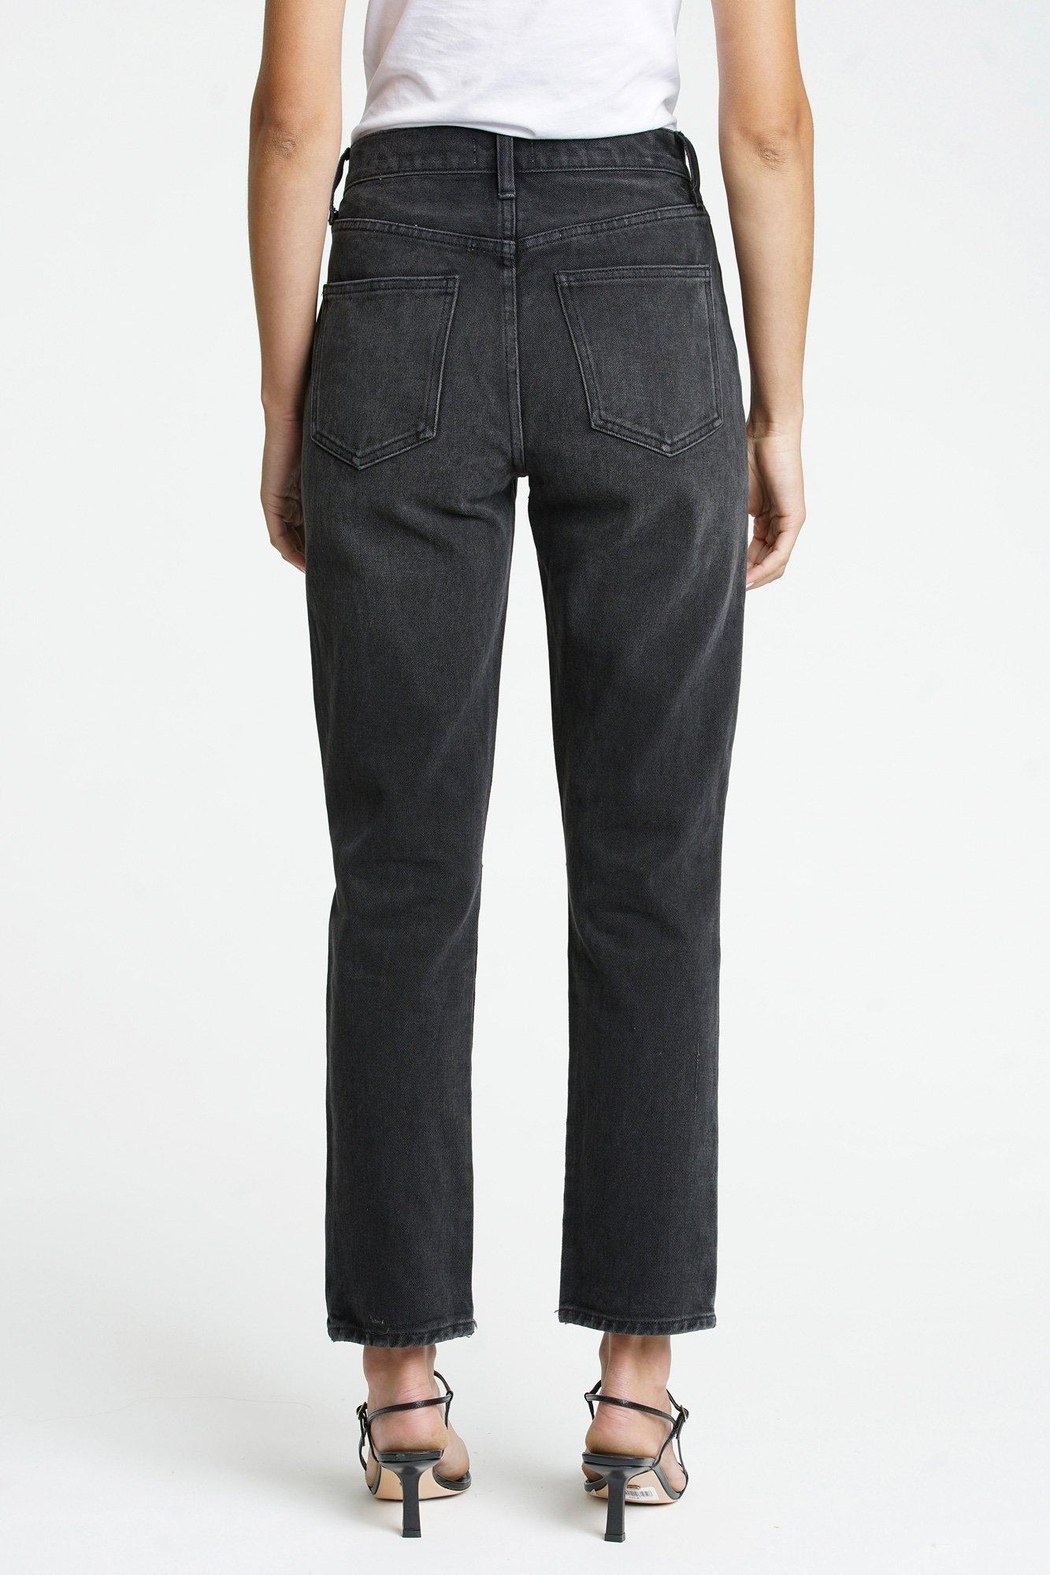 Pistola Keaton High Rise Slim Straight - Side Cropped Image